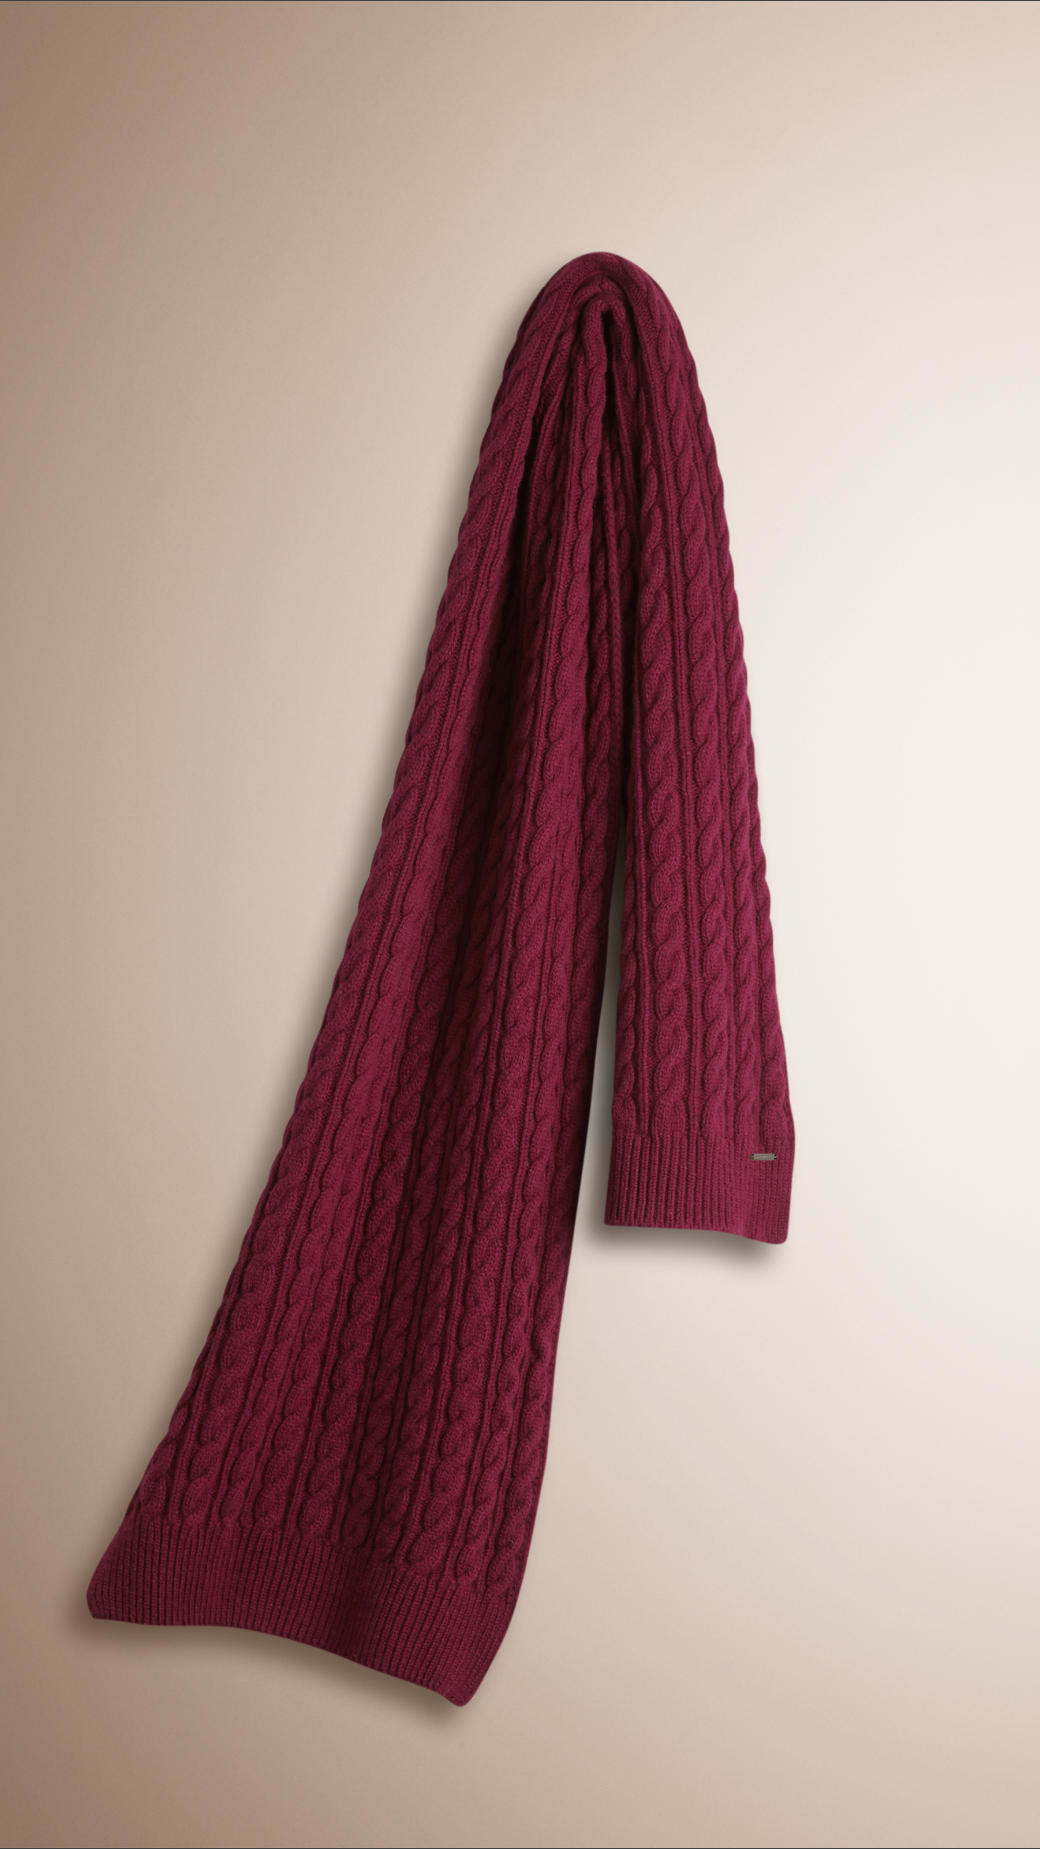 Knitting Pattern Burberry Scarf : Burberry Wool Cashmere Cable Knit Scarf Damson Red in Red for Men Lyst